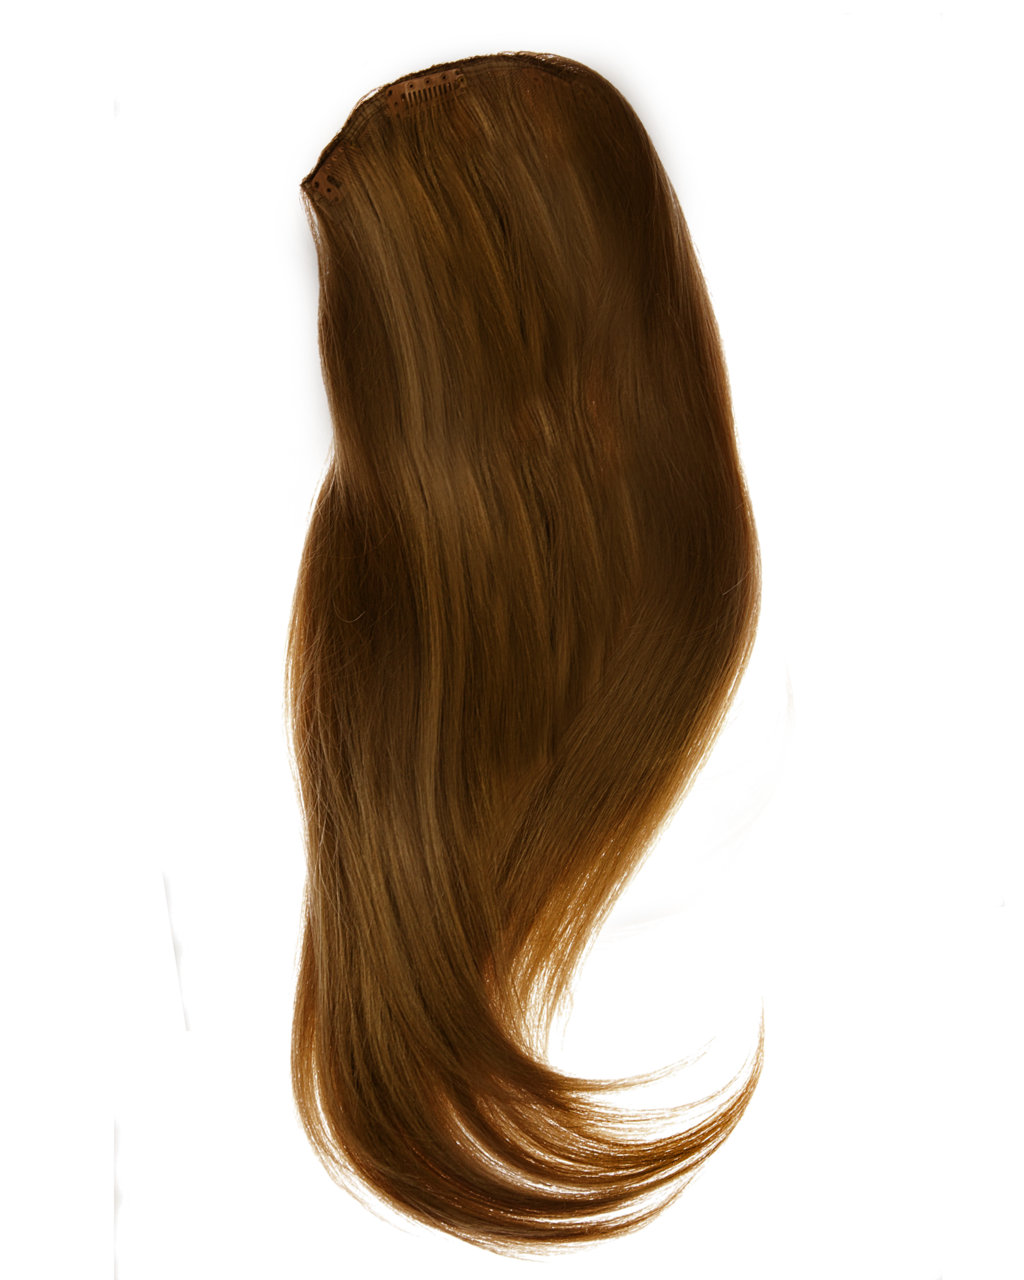 Hair Transparent PNG - Hairstyles PNG